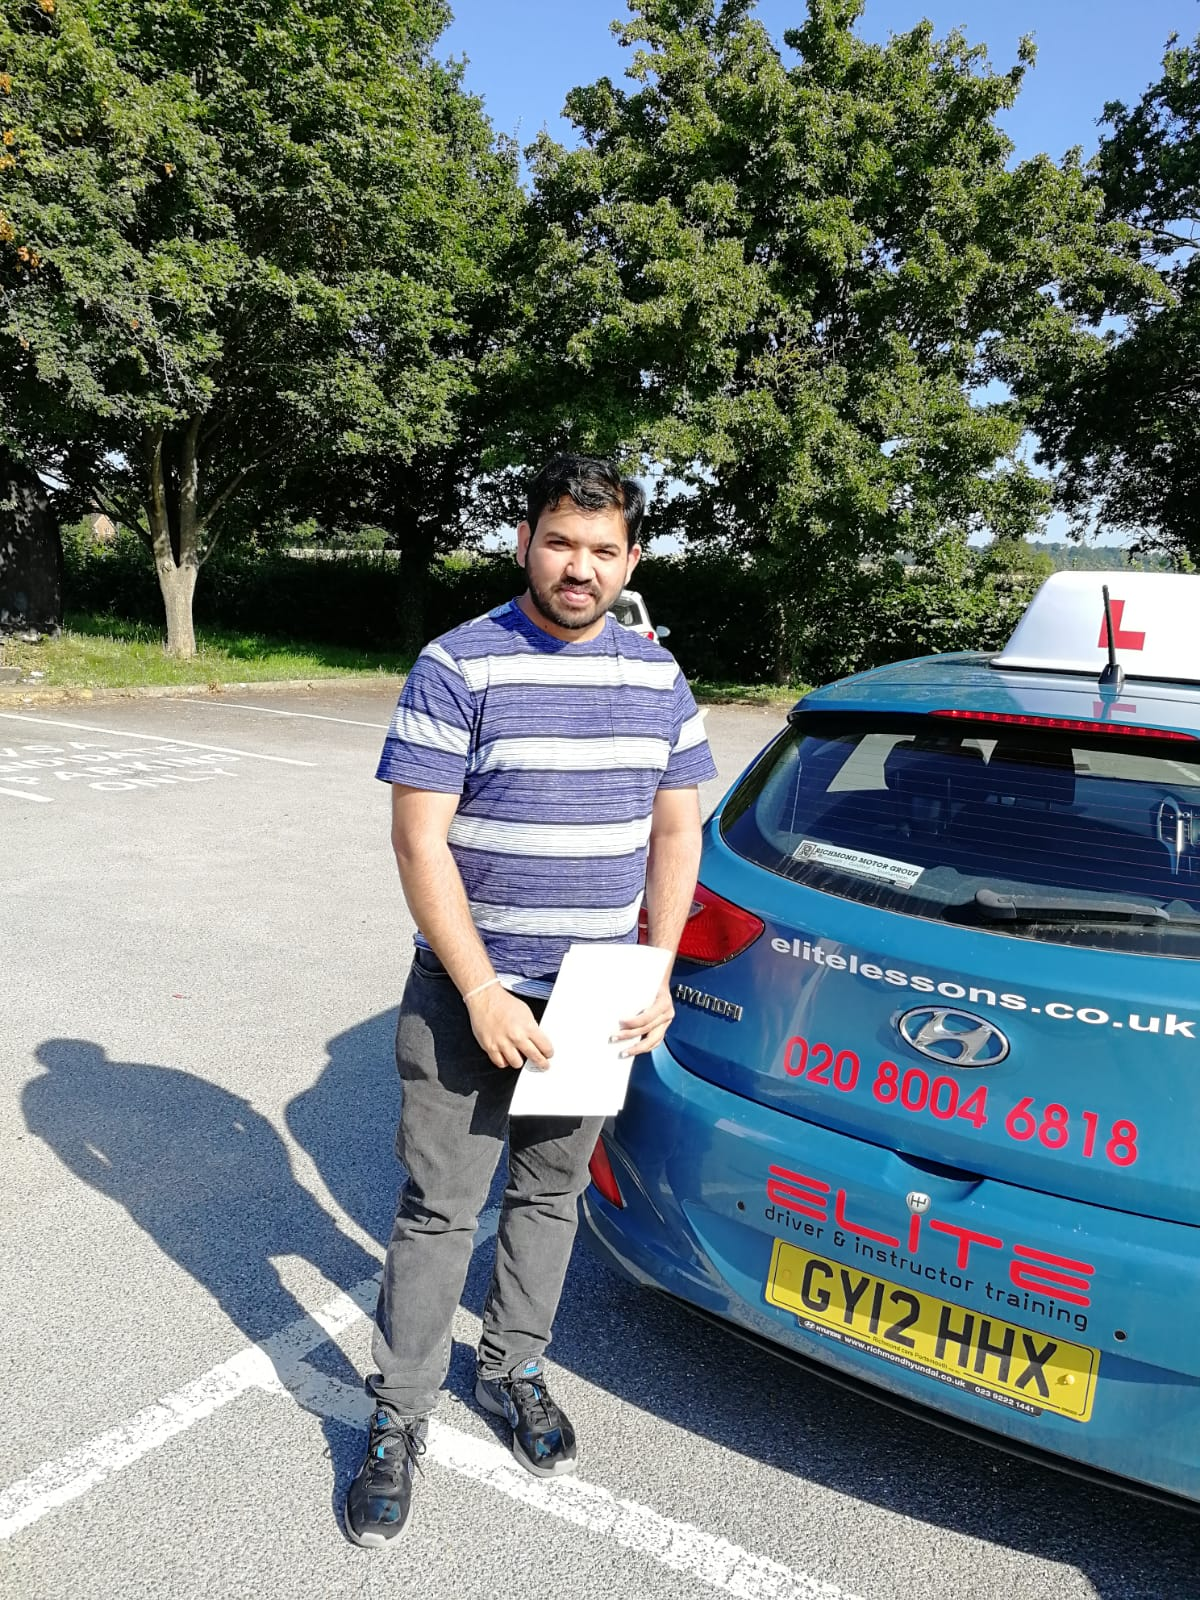 PC Chandra passed in Redhill after driving lessons with instructor Pierluigi